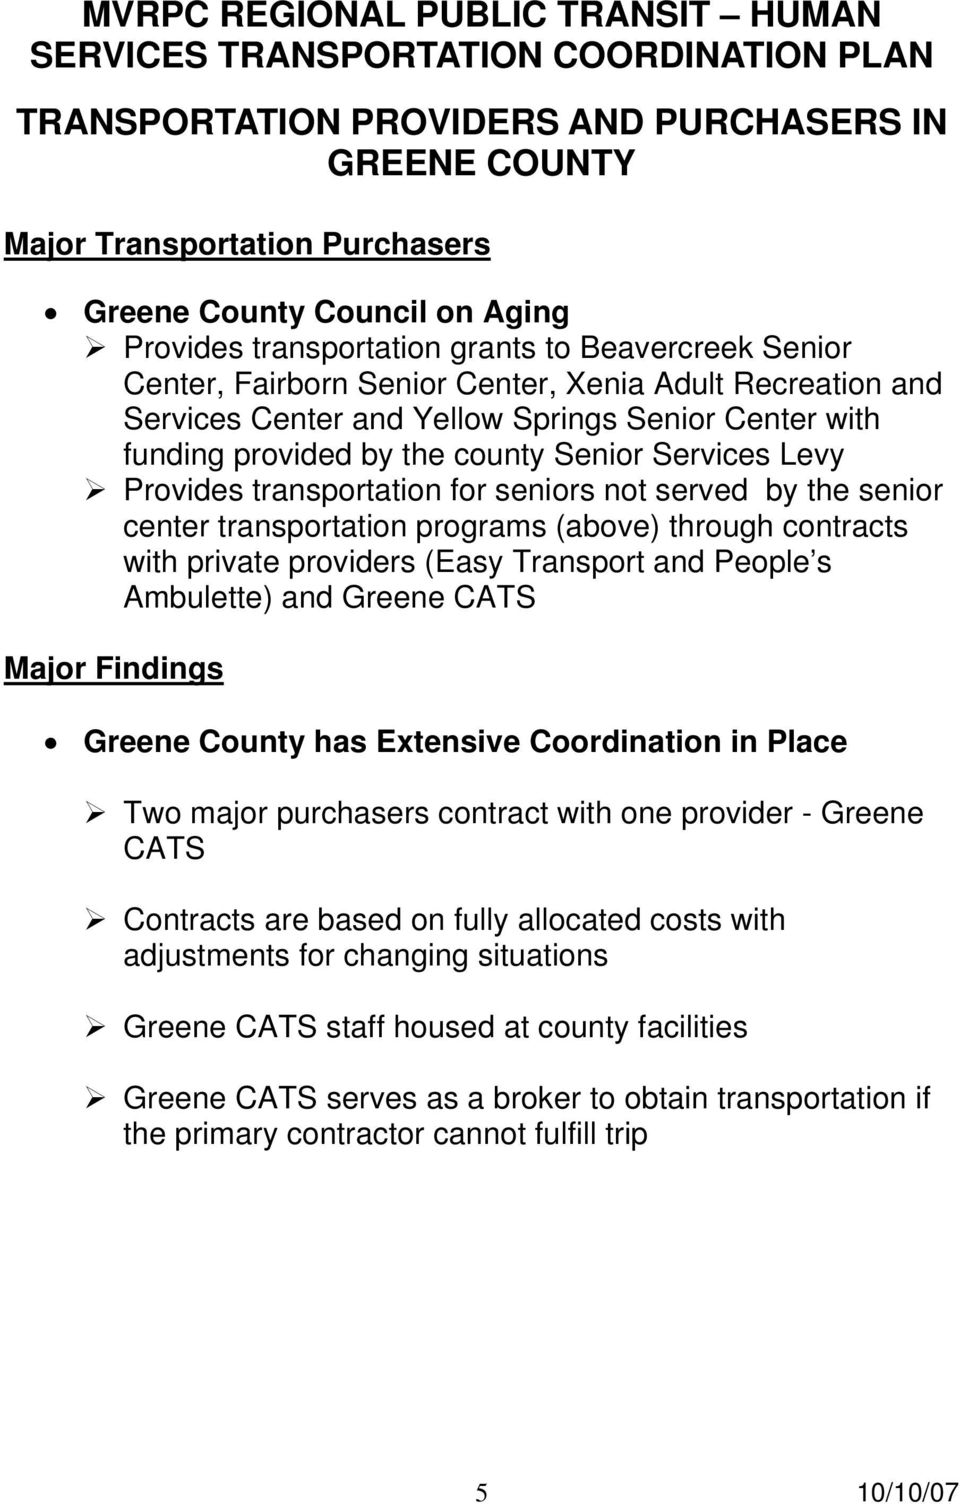 through contracts with private providers (Easy Transport and People s Ambulette) and Greene CATS Major Findings Greene County has Extensive Coordination in Place Two major purchasers contract with